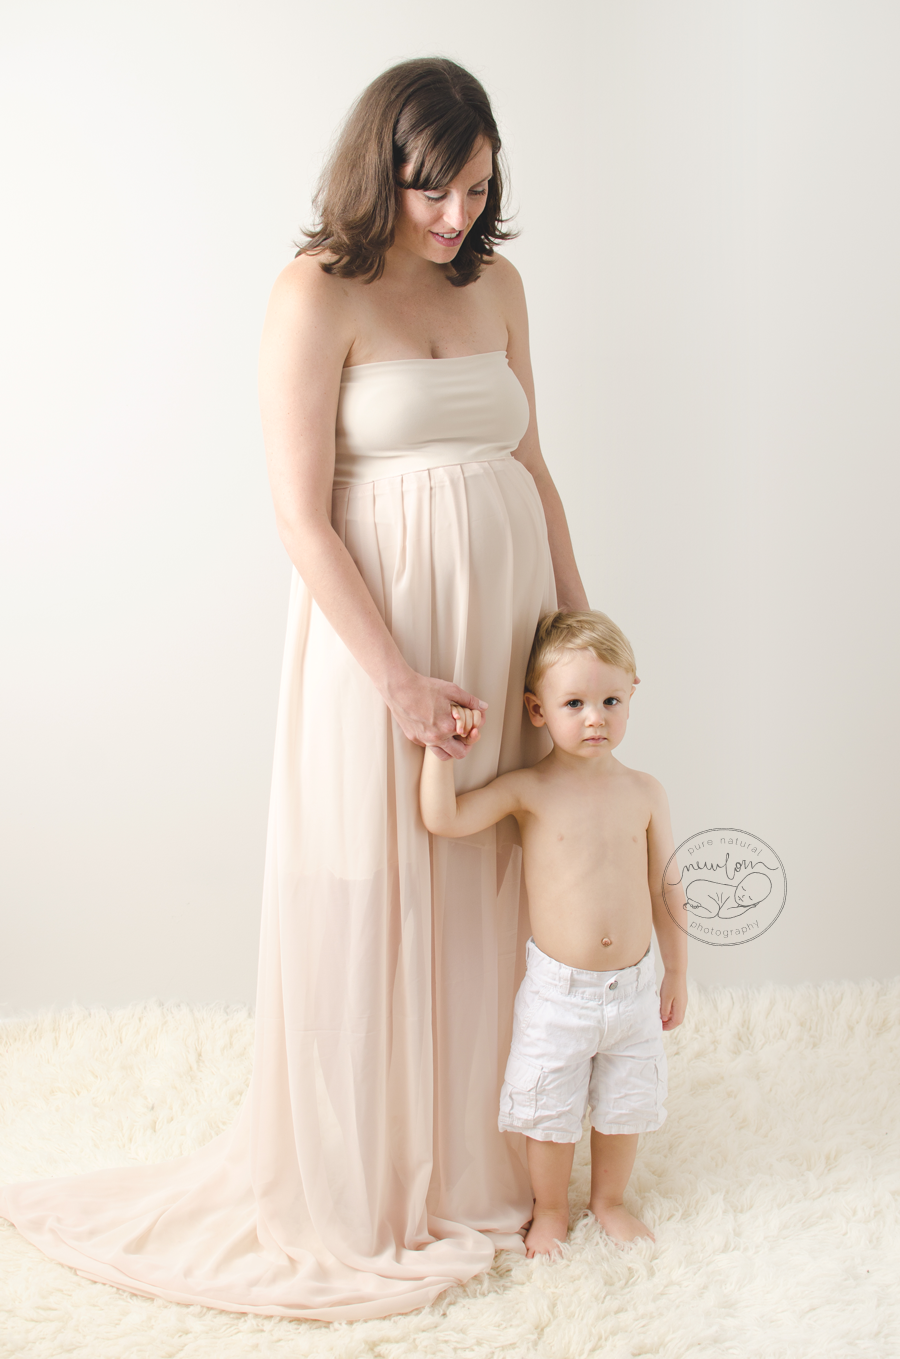 maternity photo session pregnancy photos white mom to be baby belly cream ruffled dress little boy_STF7685